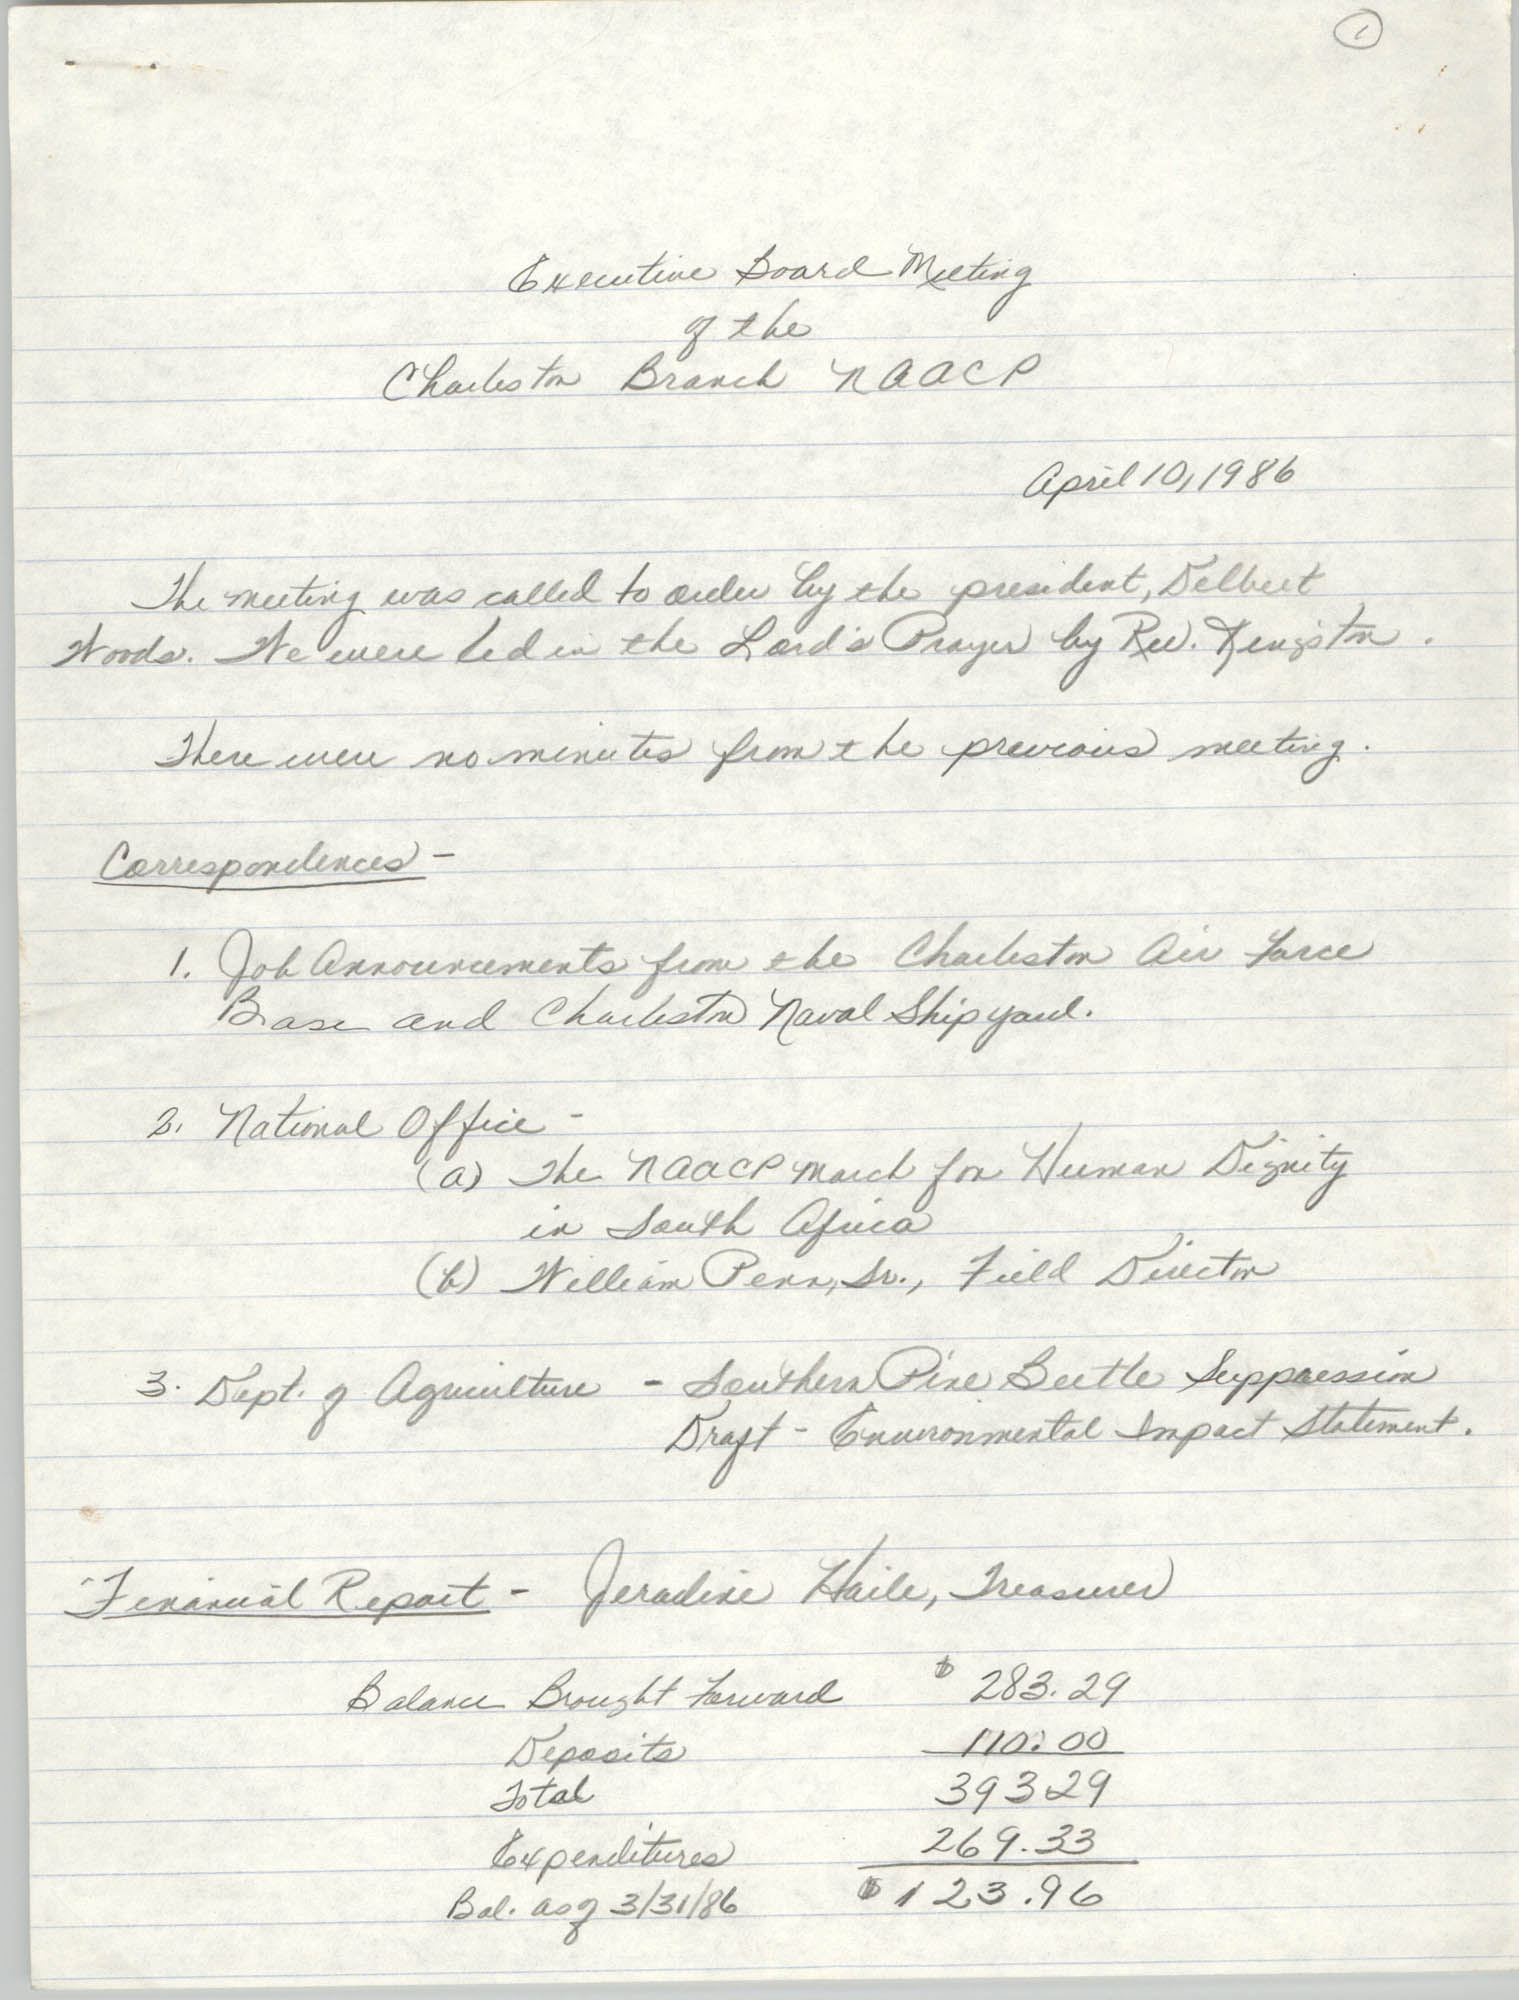 Minutes, Executive Board Meeting, Charleston Branch of the NAACP, April 10, 1986